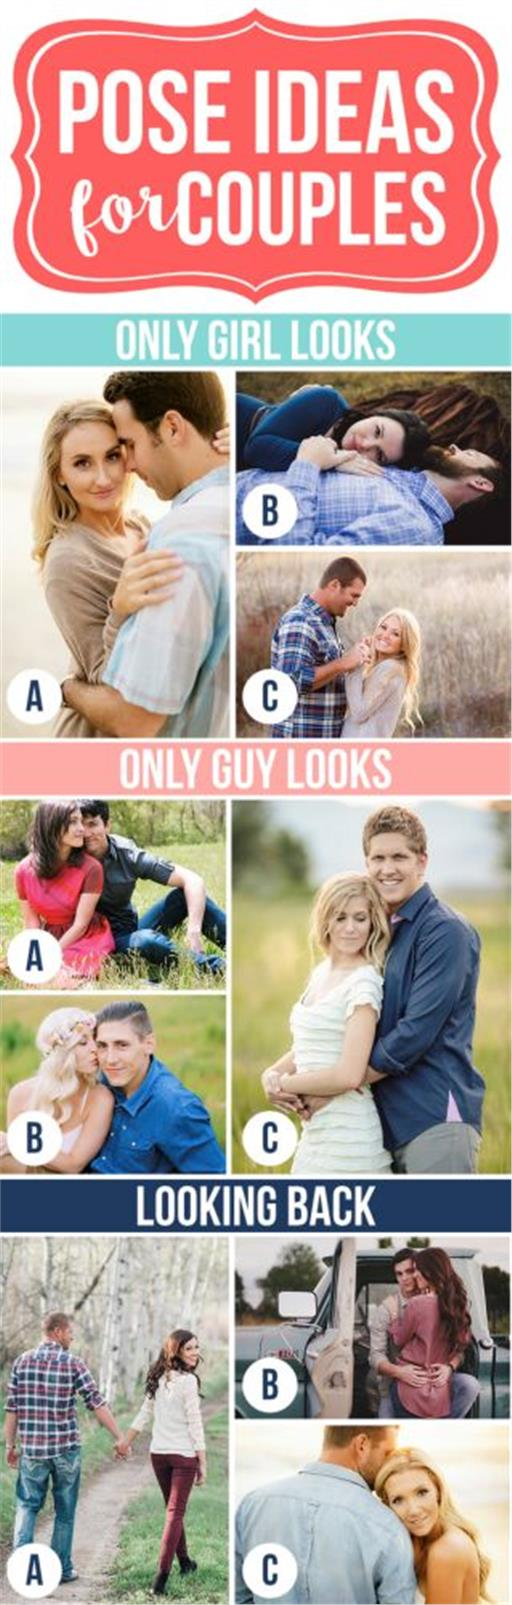 27396768_Pose_Ideas_for_Couples_4.limghandler